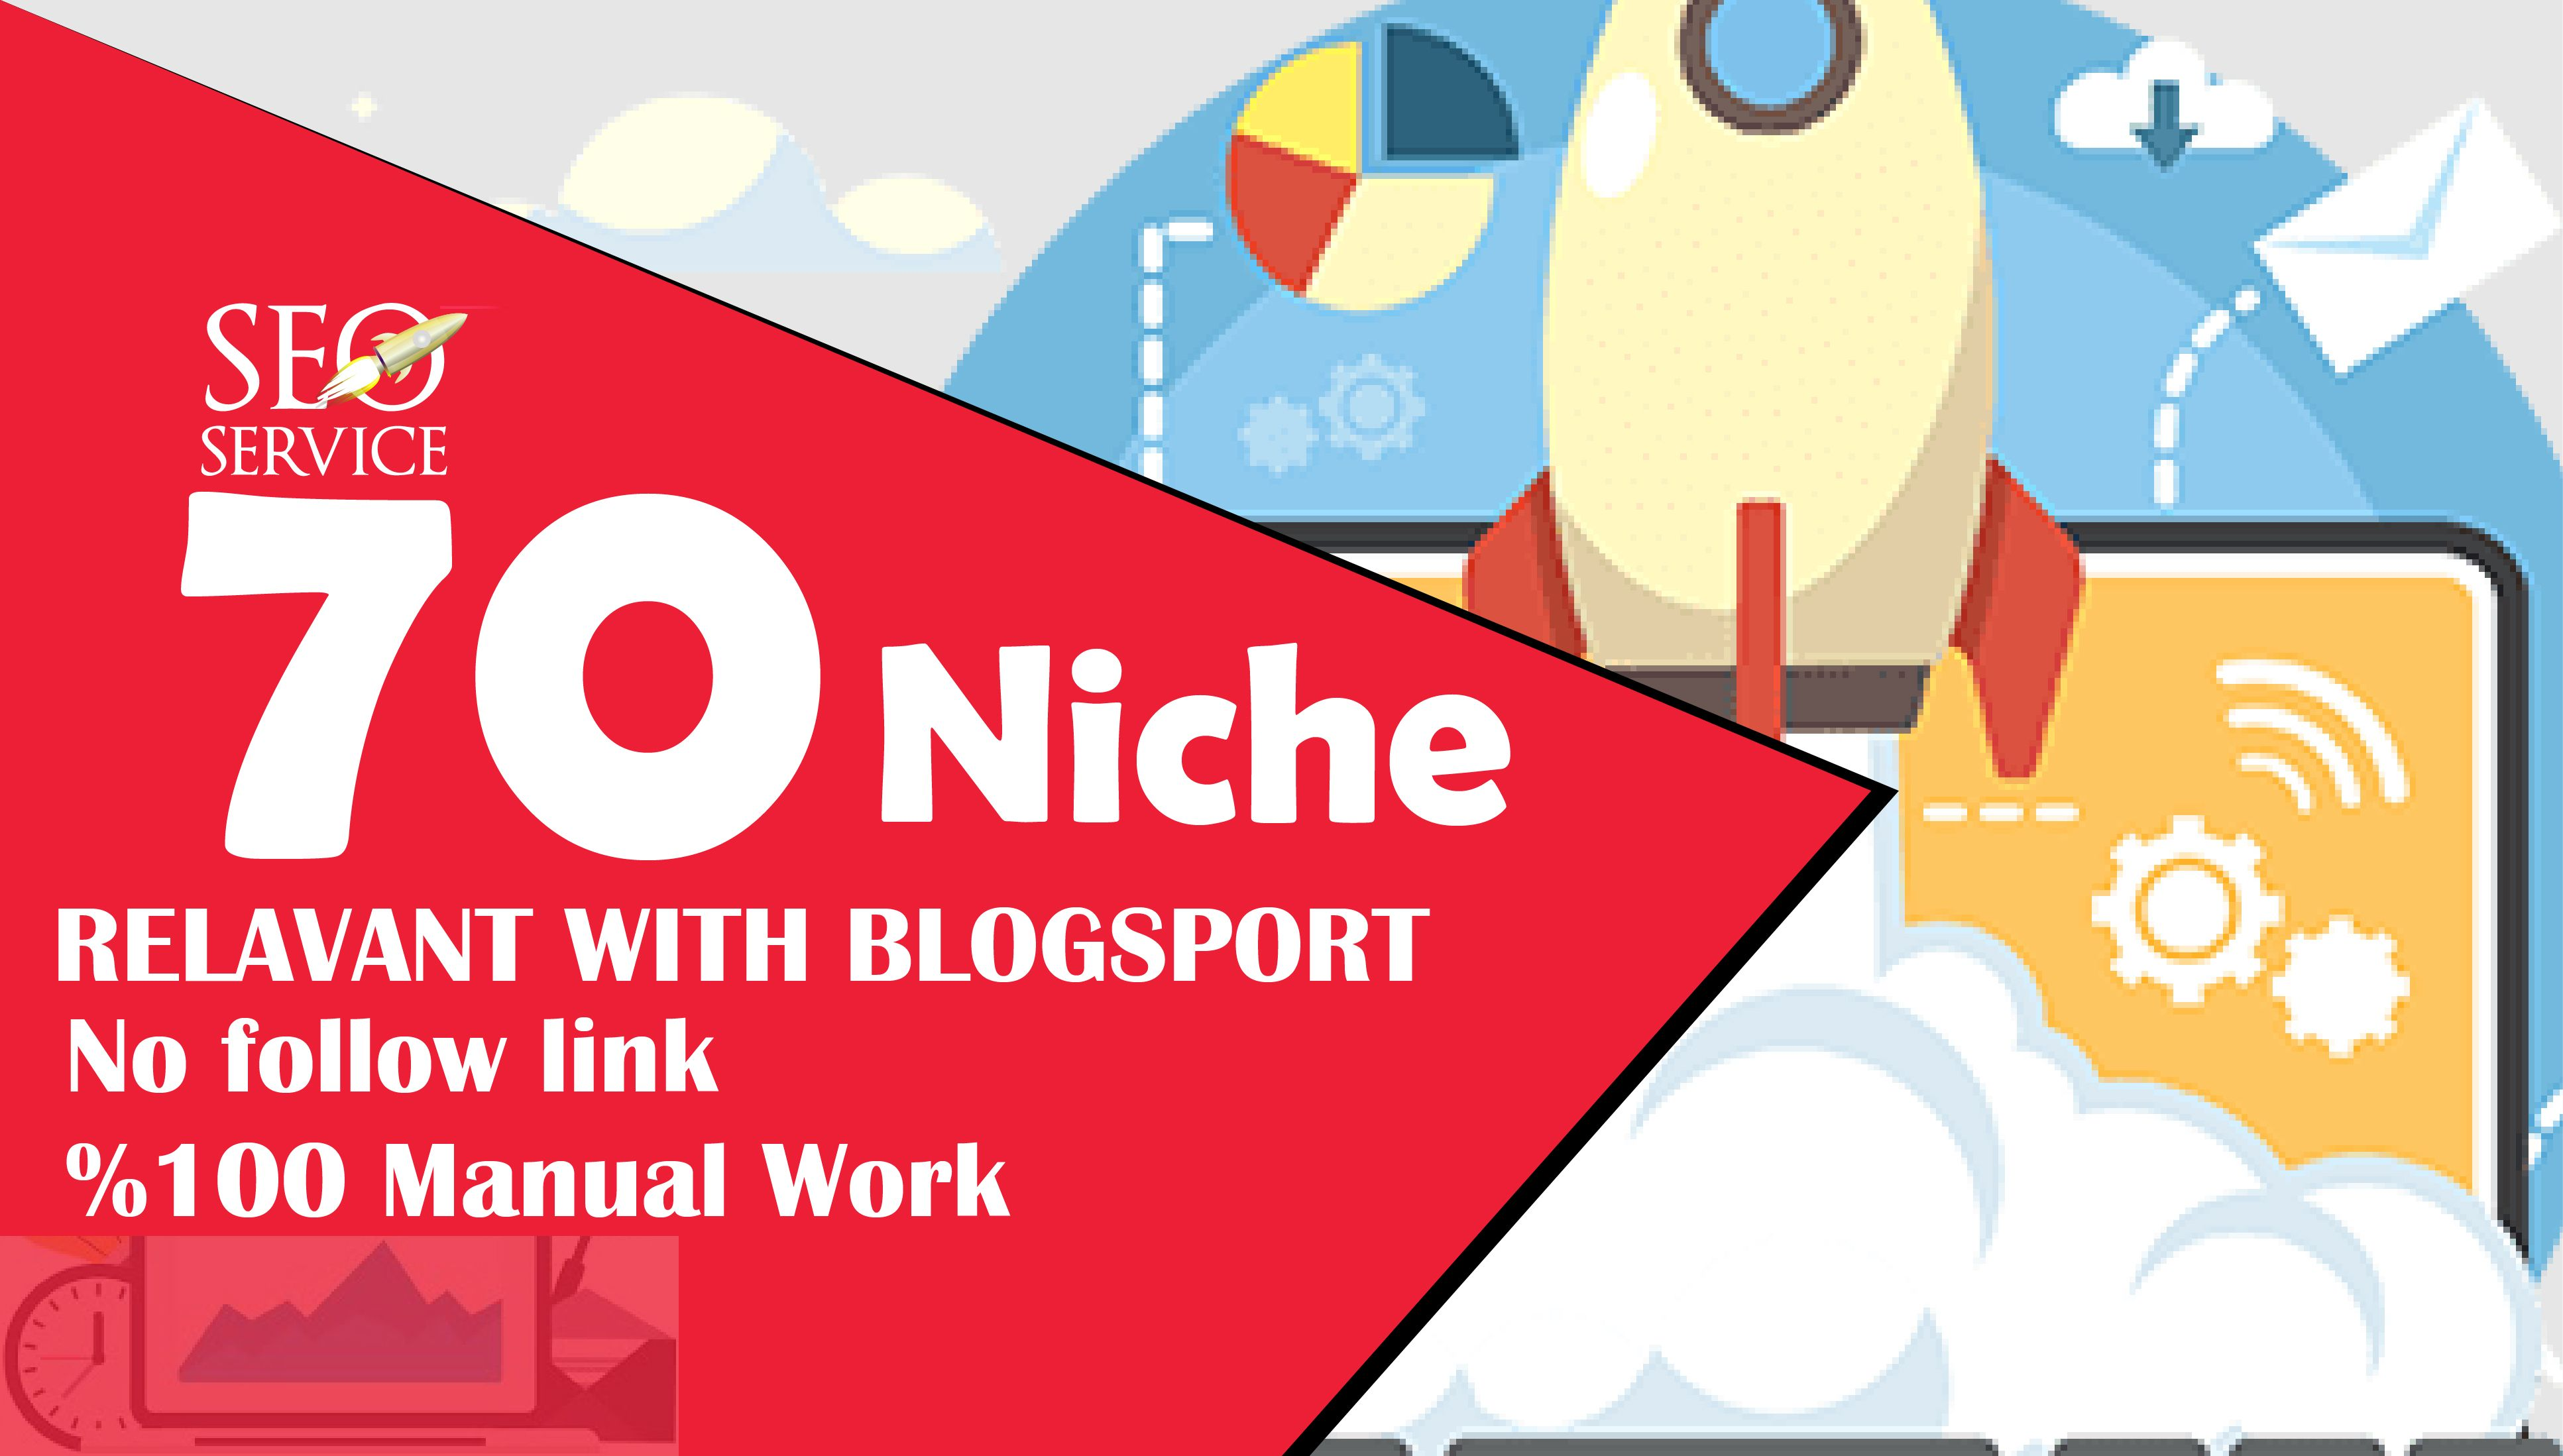 do 70 niche relevant blog comment backlinks low OBL